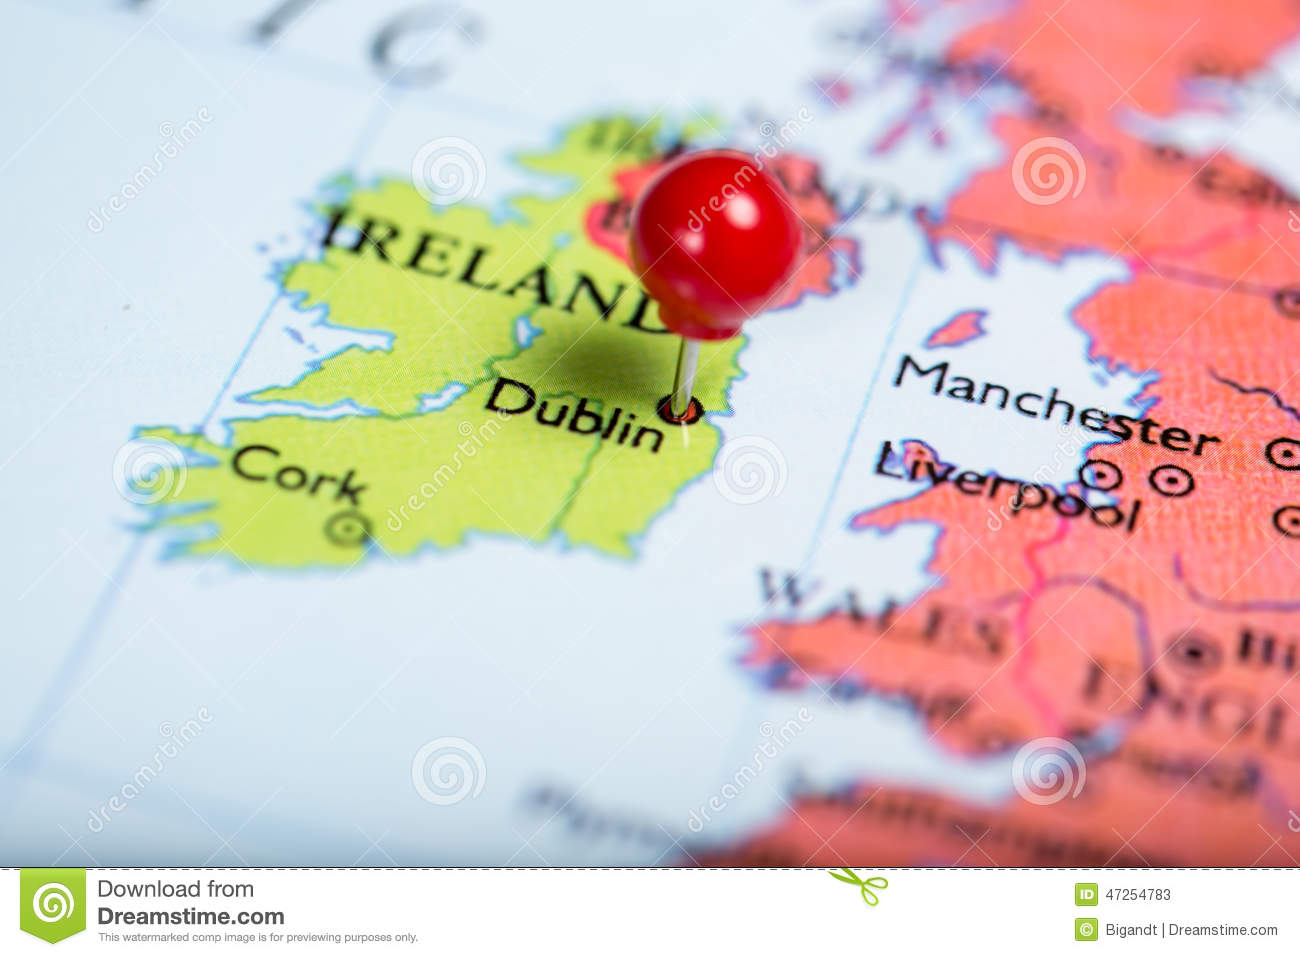 Dublin On Map Of Ireland.Red Push Pin On Map Of Ireland Stock Image Image Of Push Dublin